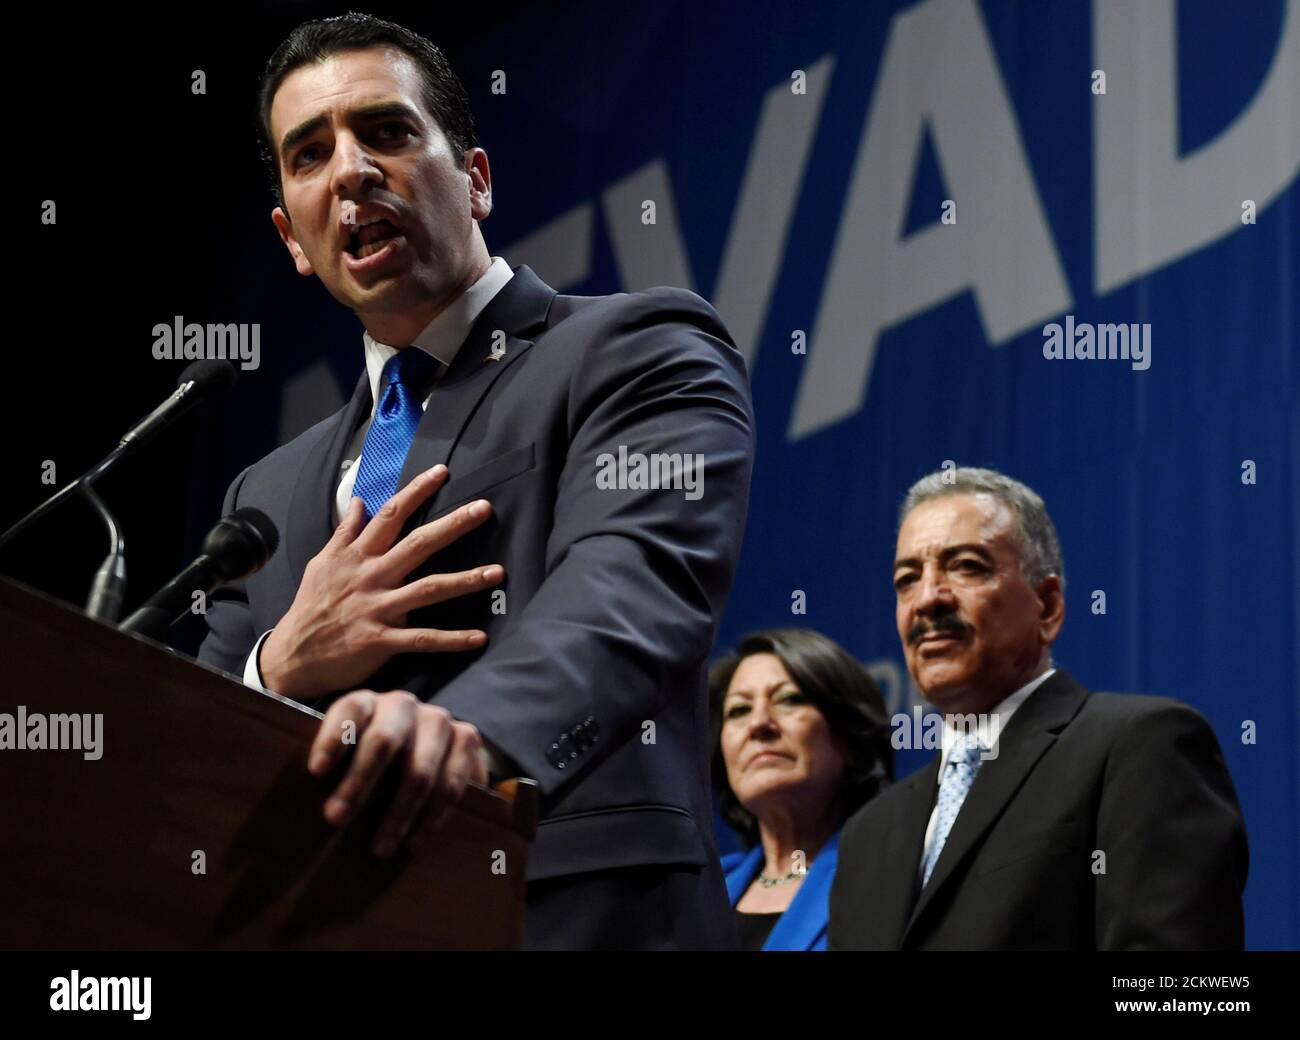 Ruben Kihuen, candidate for United States Representative, NV 4th District speaks at the Nevada state democratic election night event in Las Vegas, Nevada, U.S. November 8, 2016.  REUTERS/David Becker Foto de stock